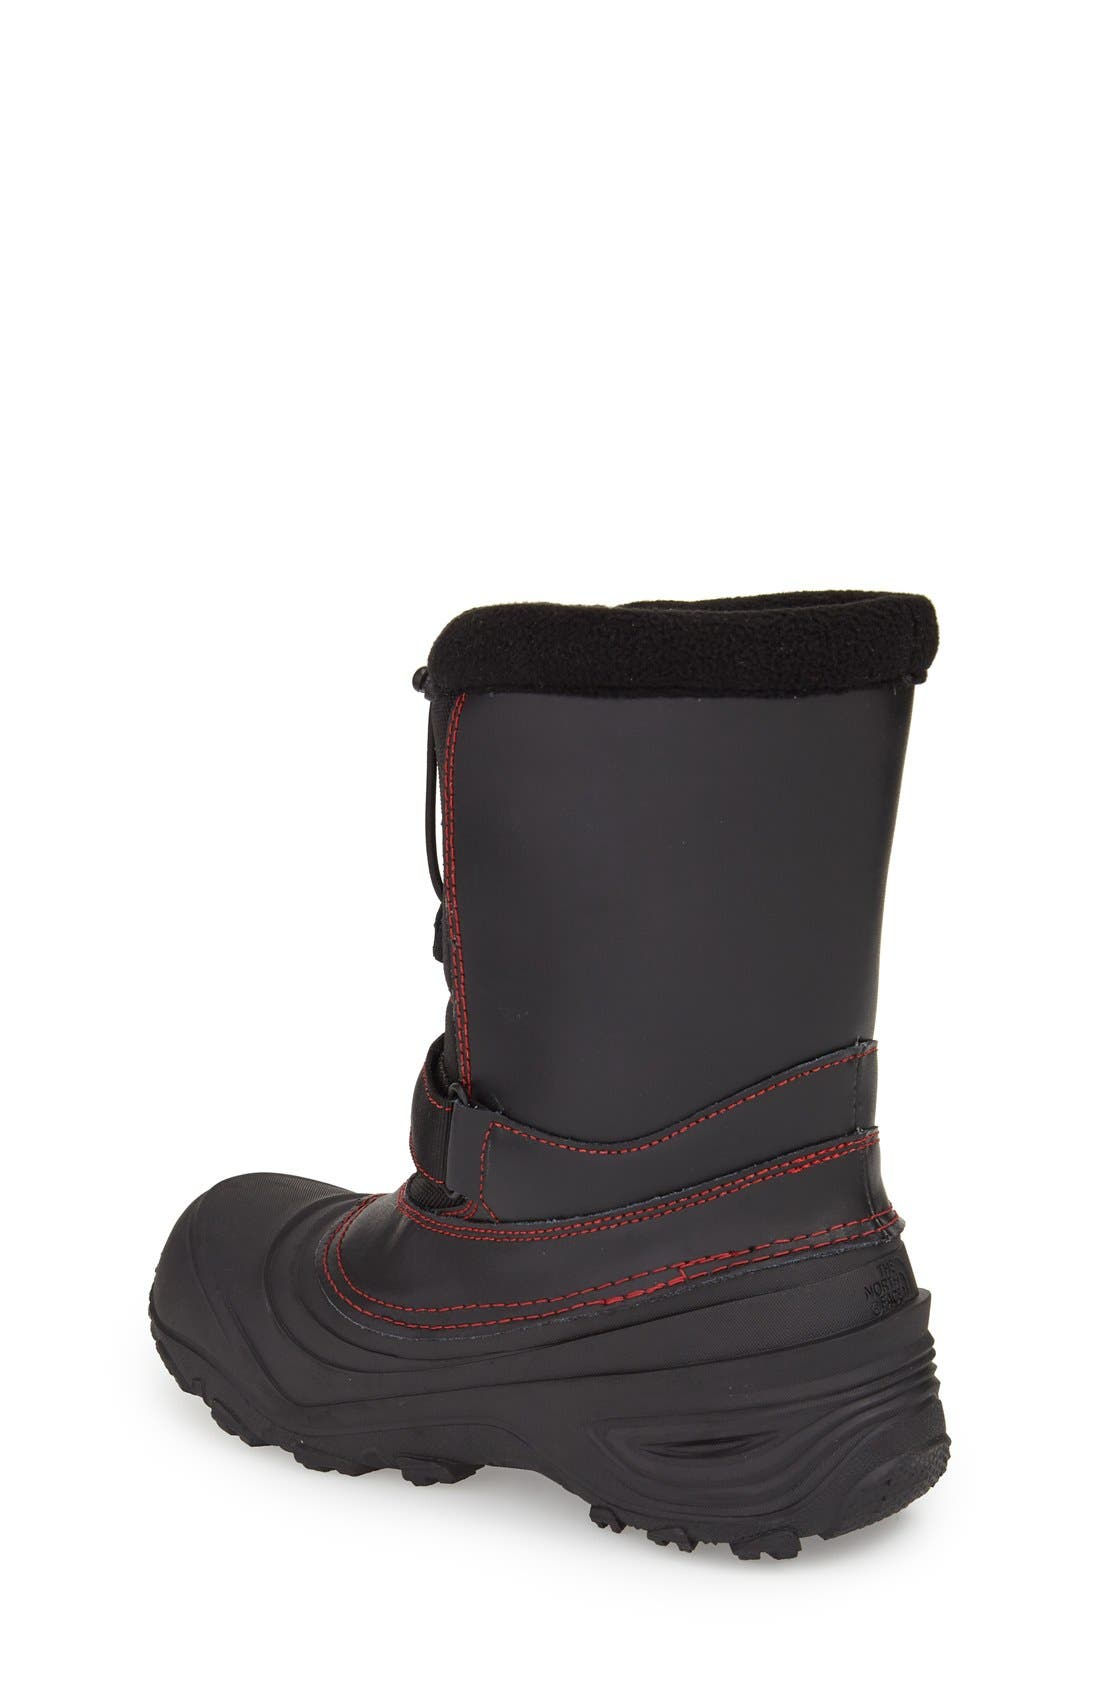 'Alpenglow Extreme II' Waterproof Snow Boot,                             Alternate thumbnail 3, color,                             001